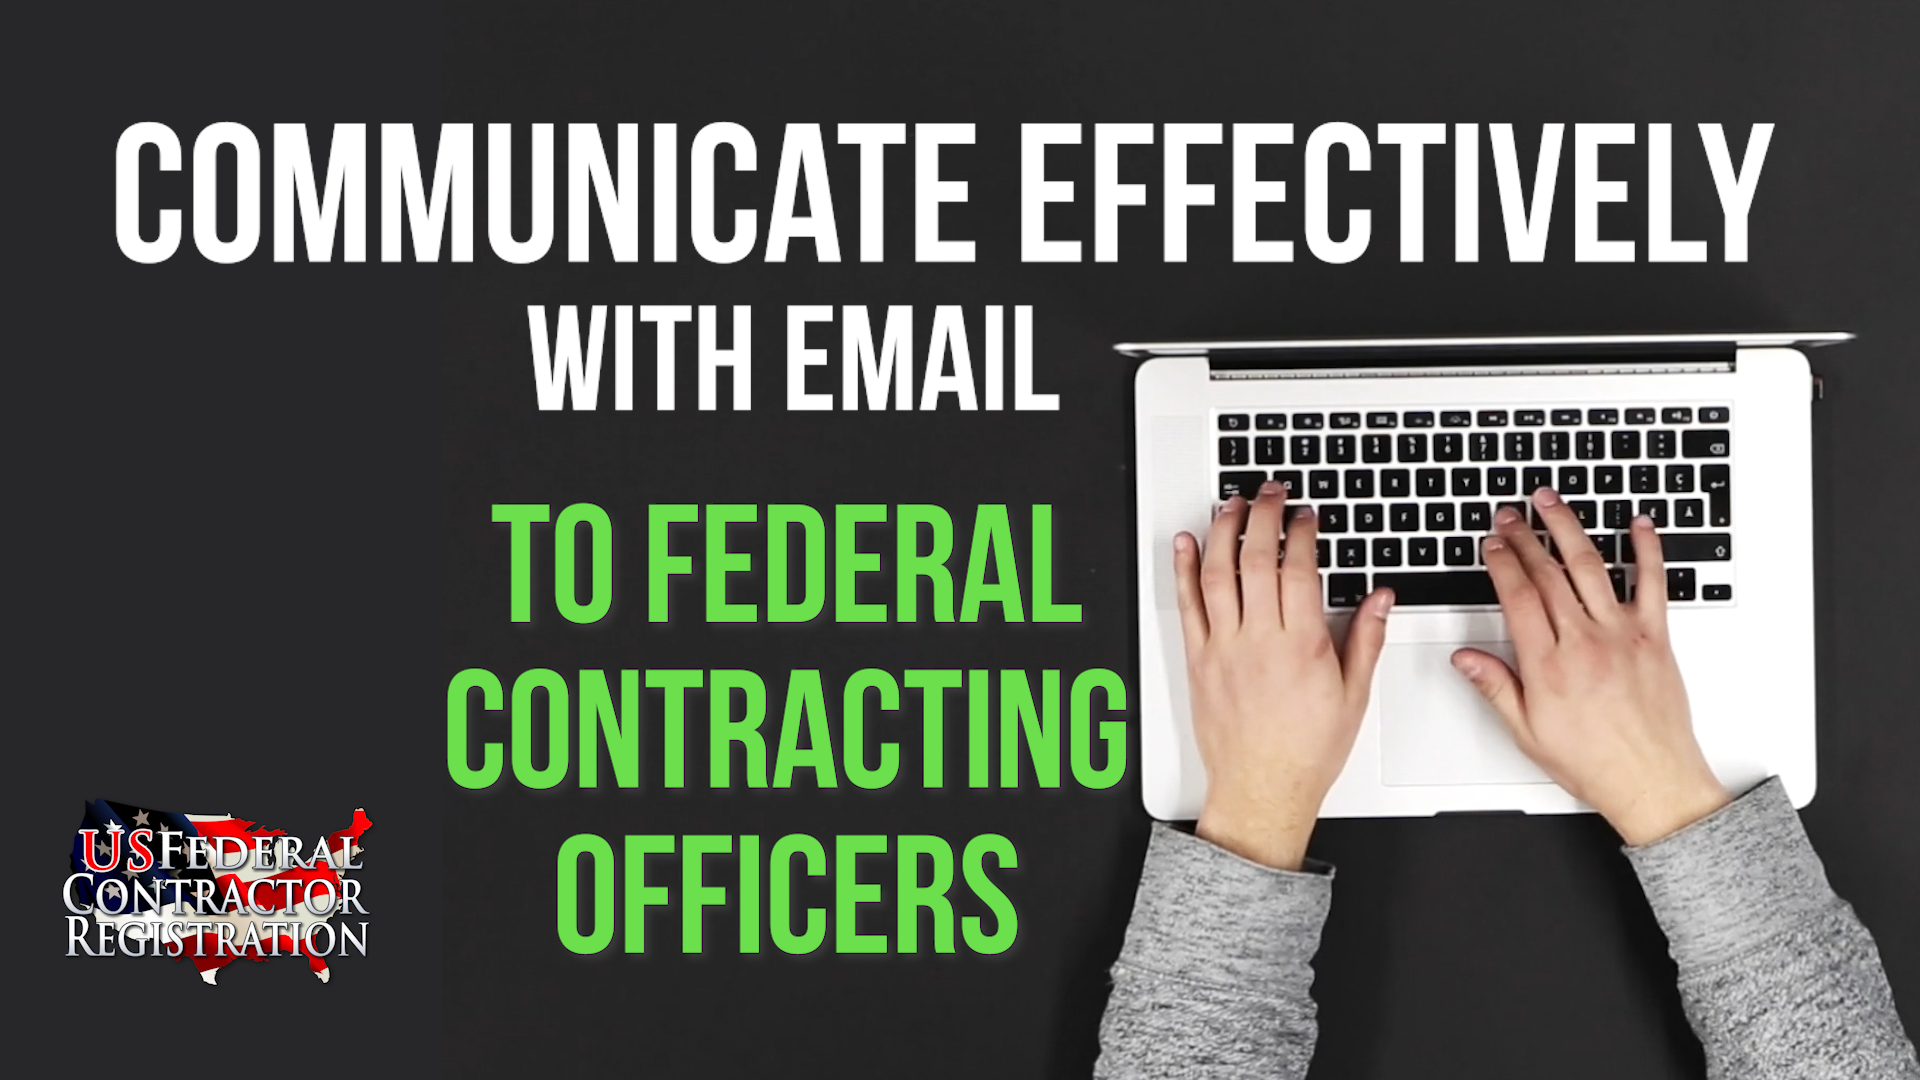 email effective thumb 2